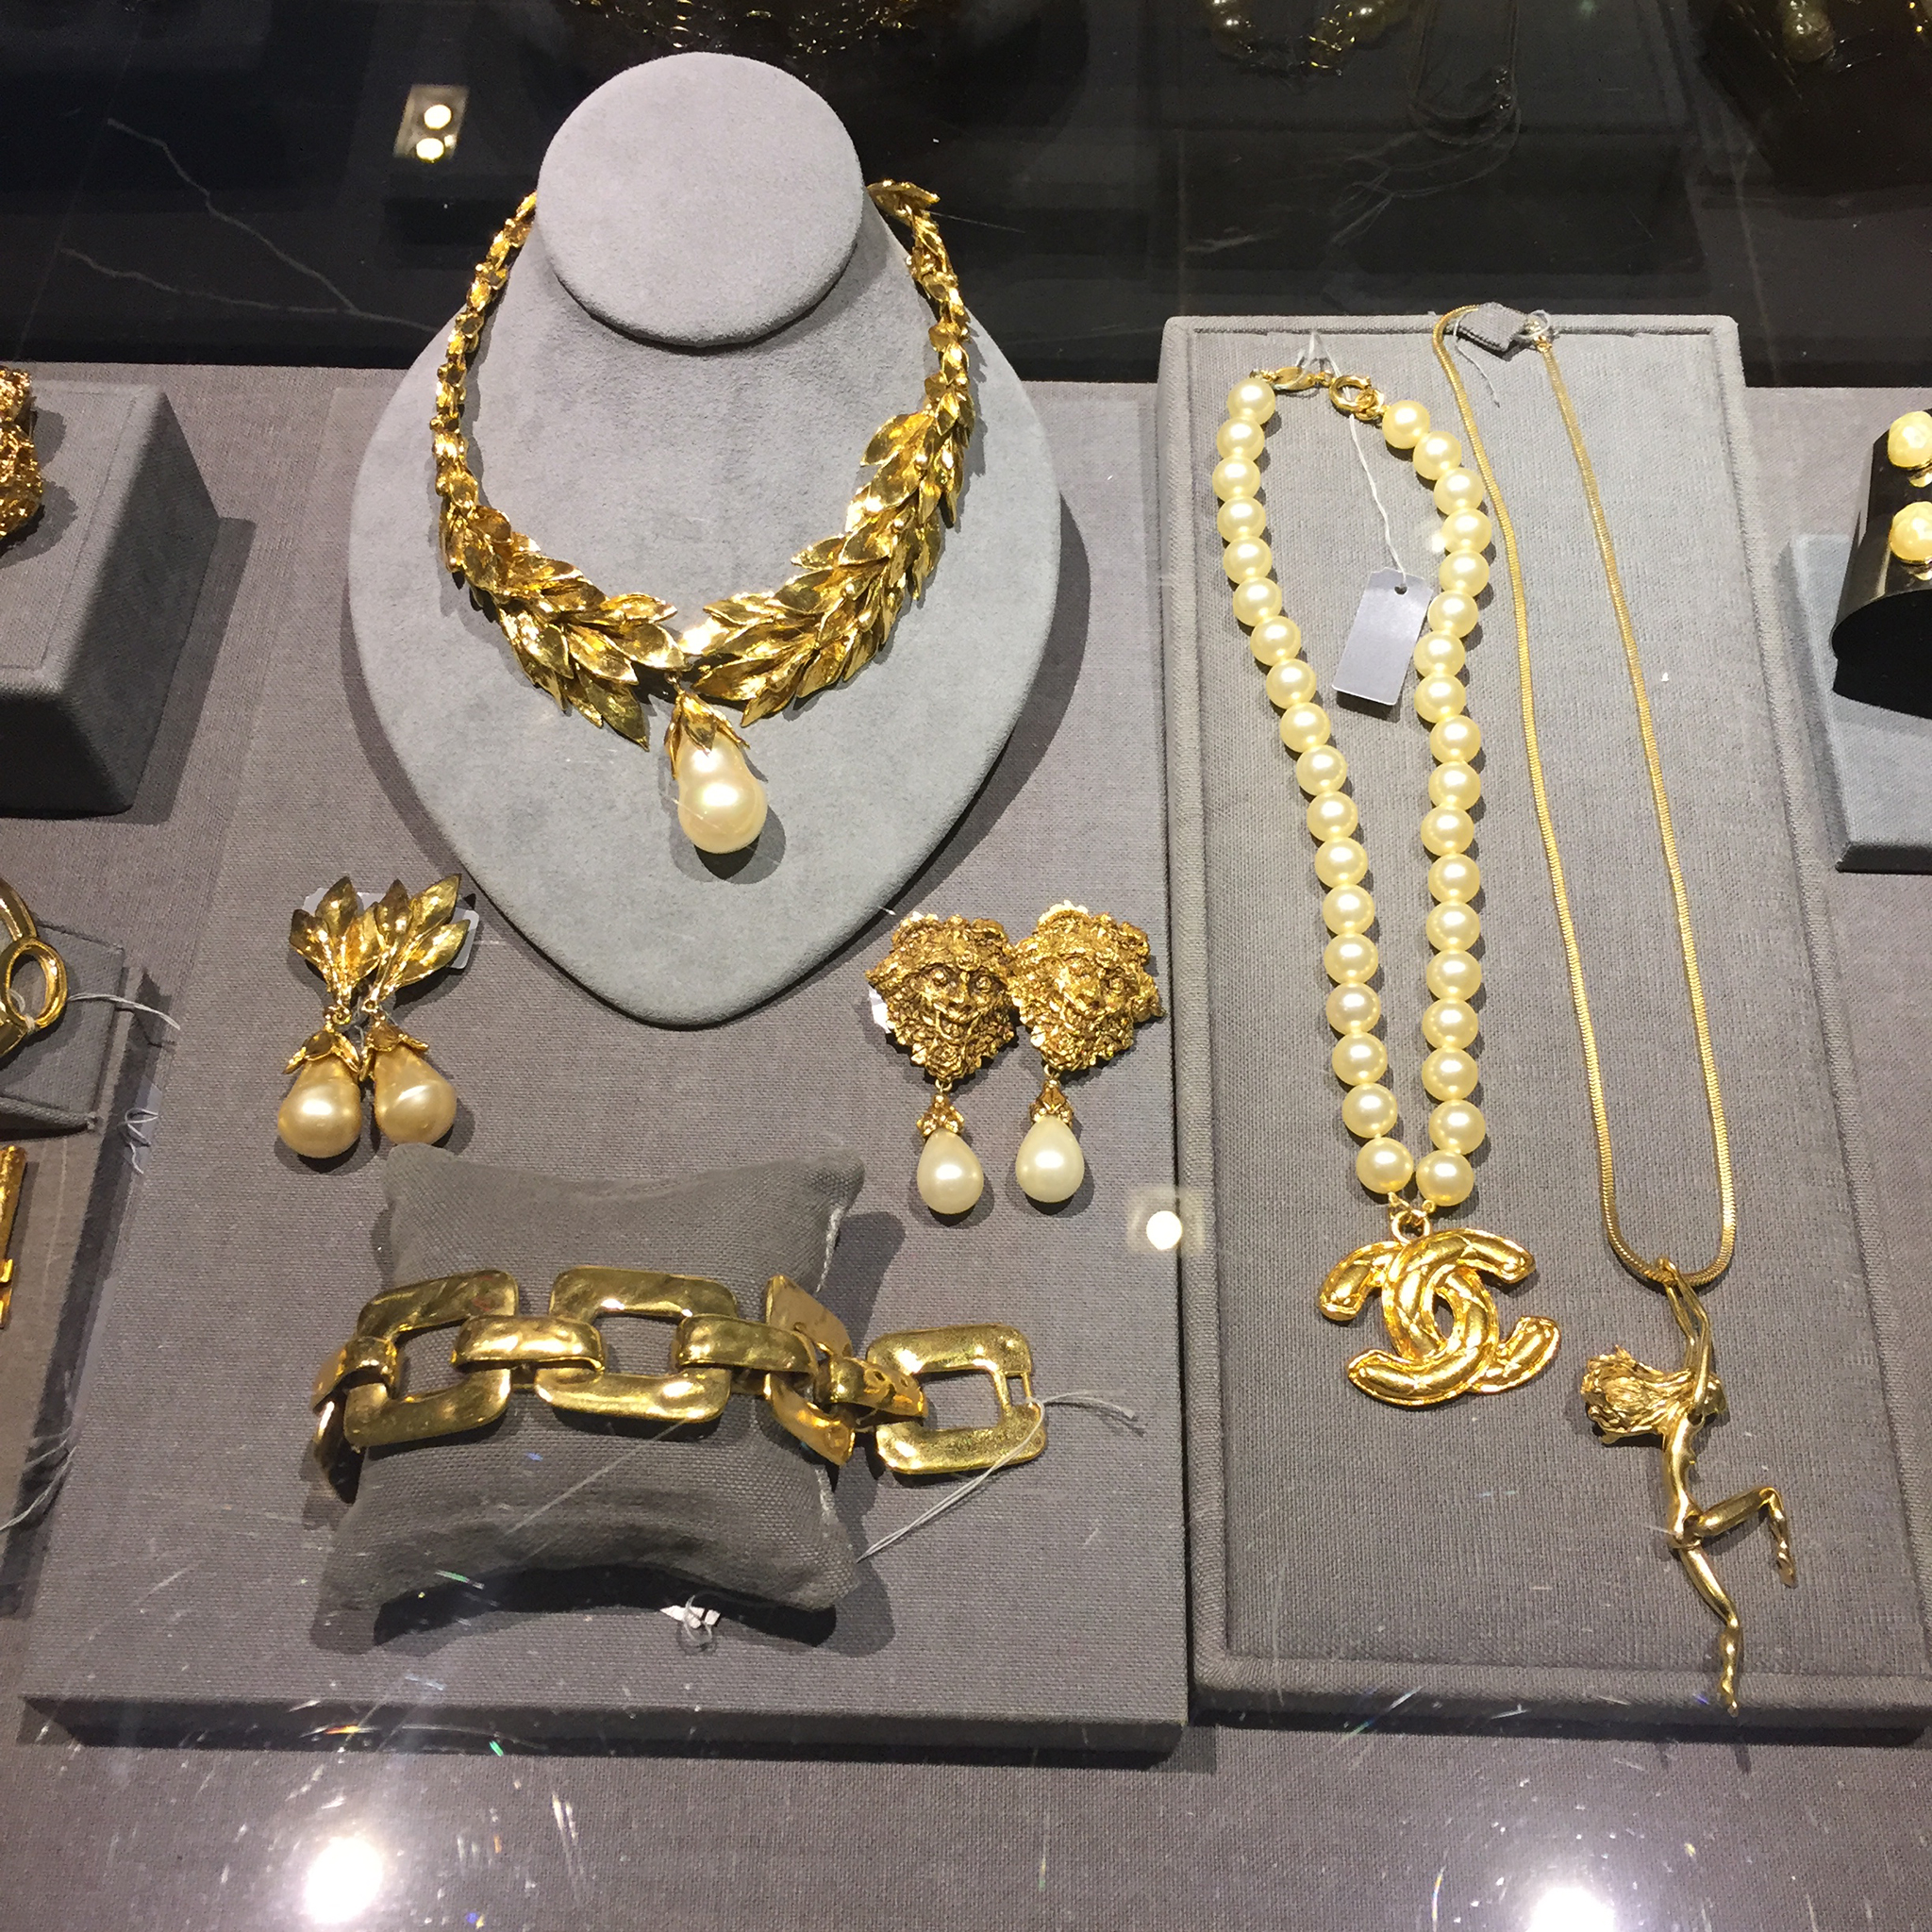 Jewelry display with stunning gold pieces seen at Barneys in New York.